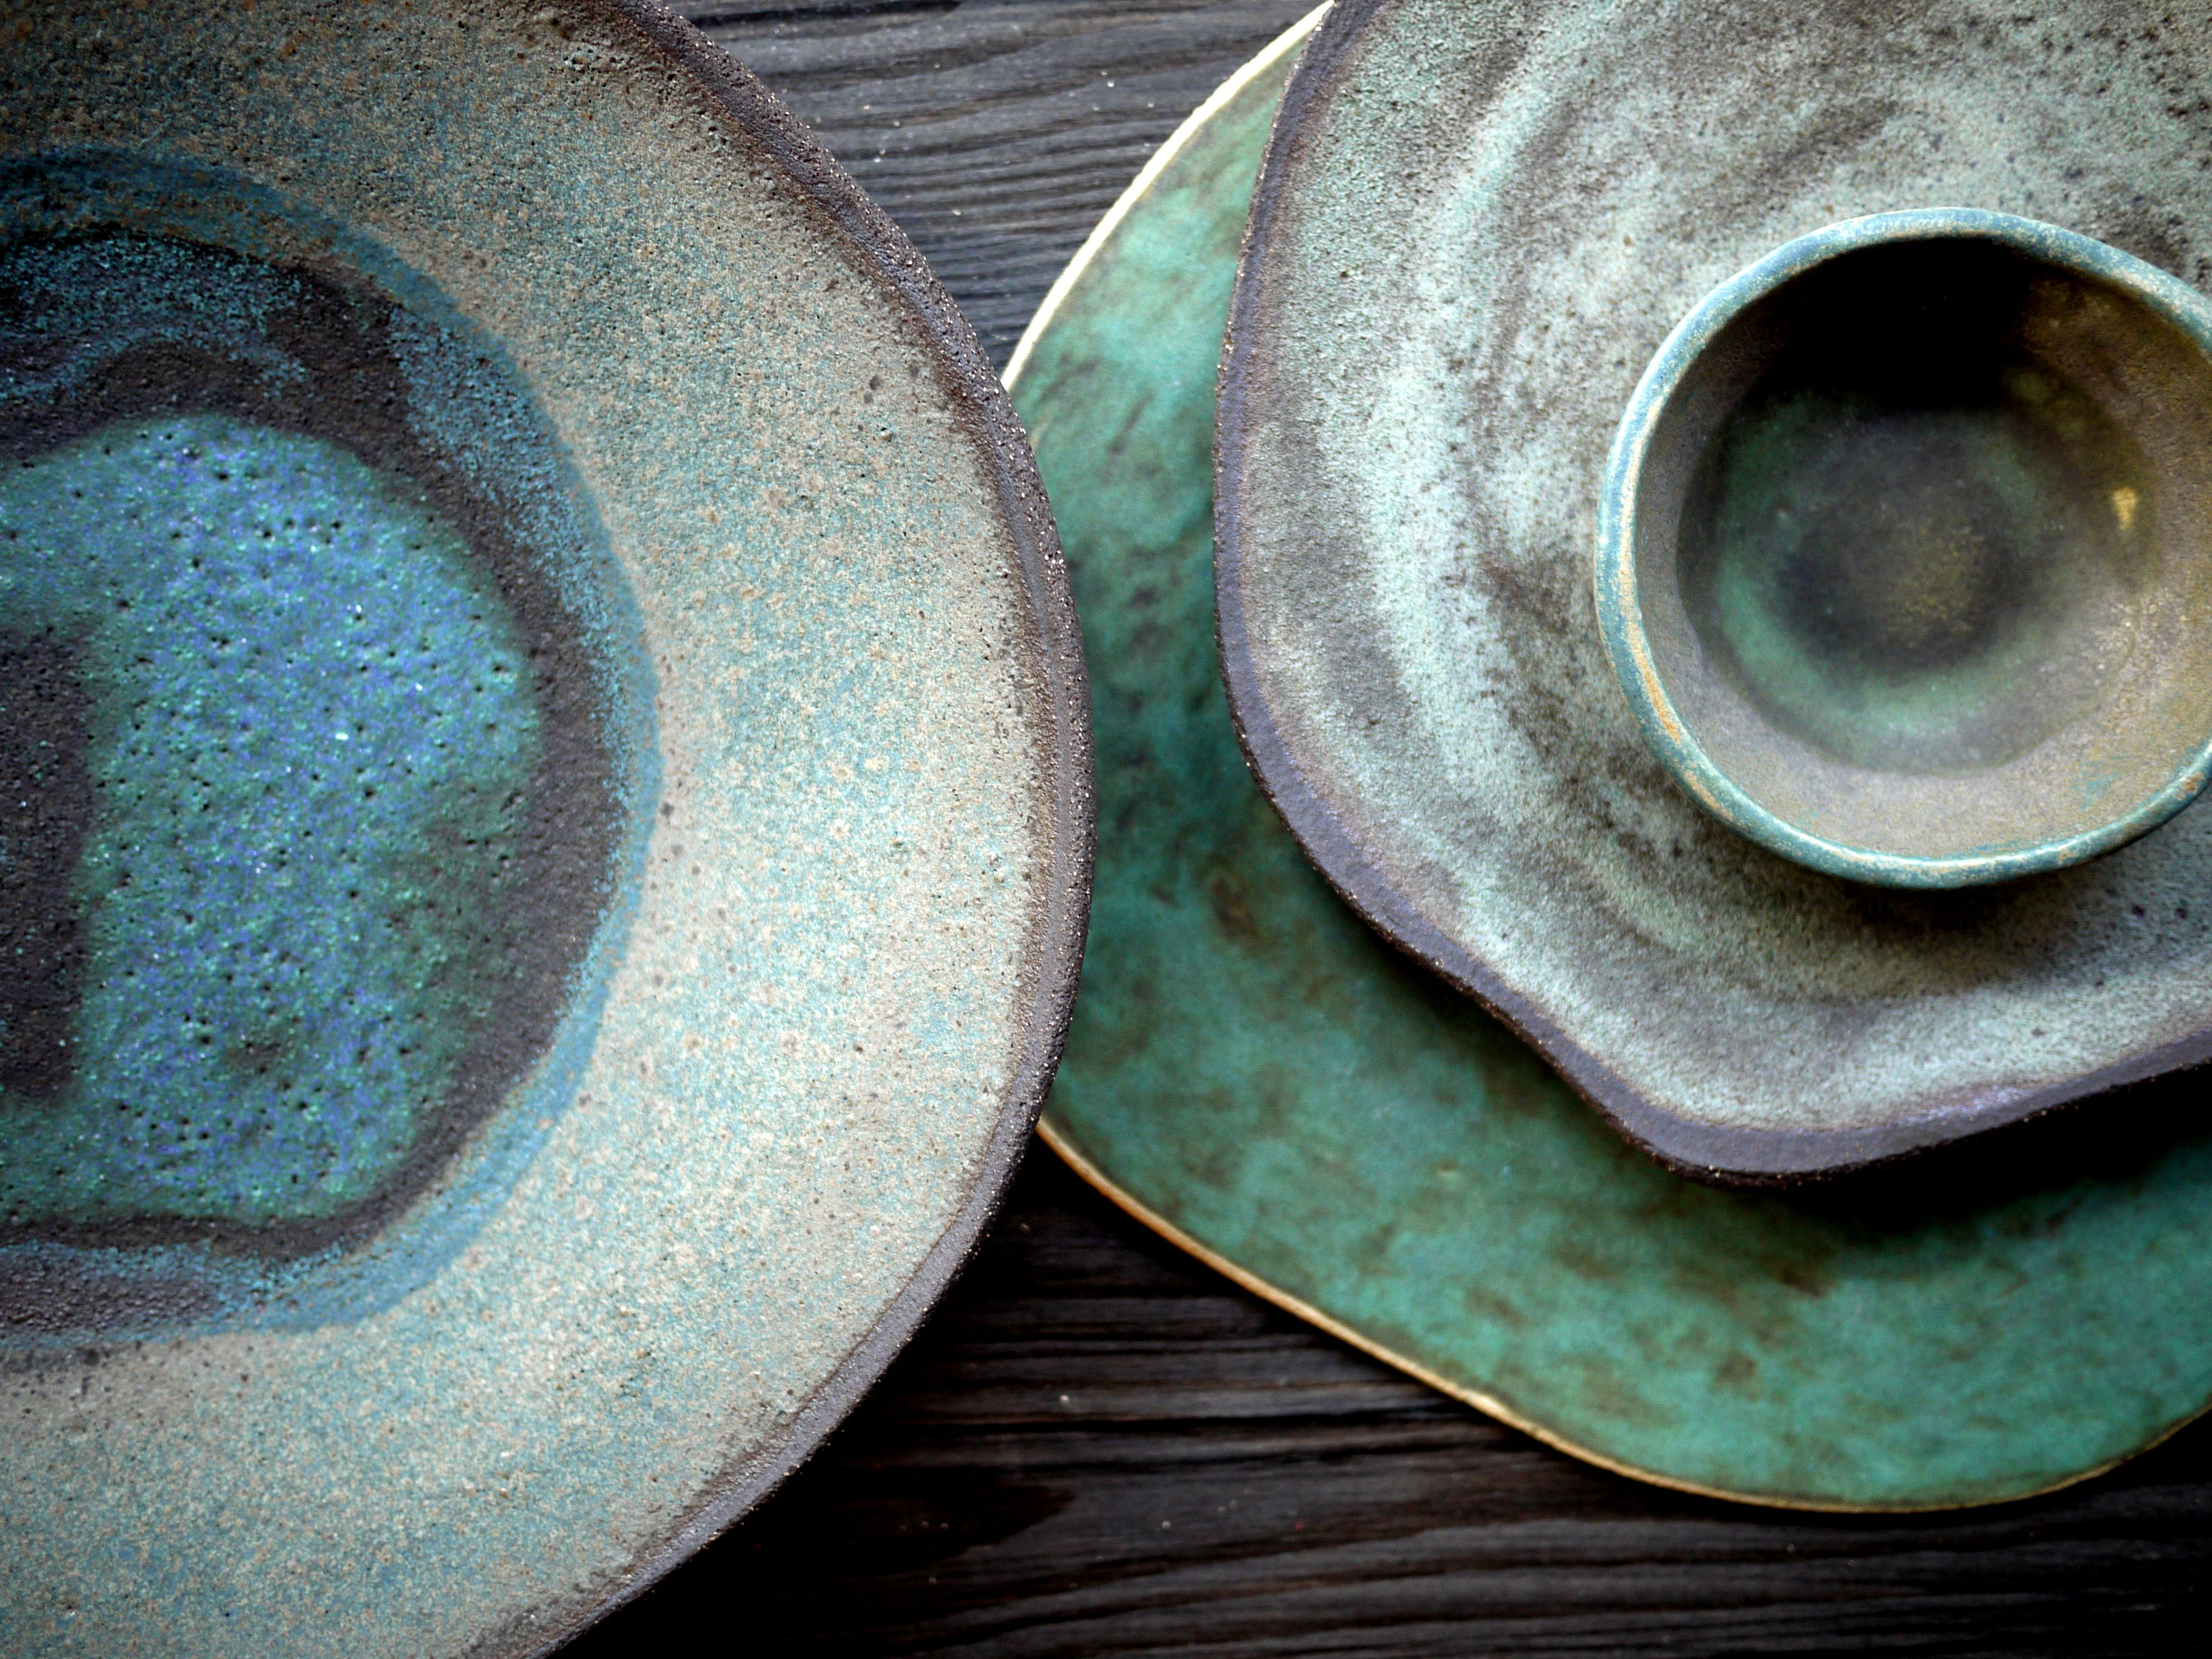 Rusty Plates Green Nature Inspired Decoration Gift Idea On The Table Plate Bowl Handmade Ceramics Plates Plates And Bowls Plates